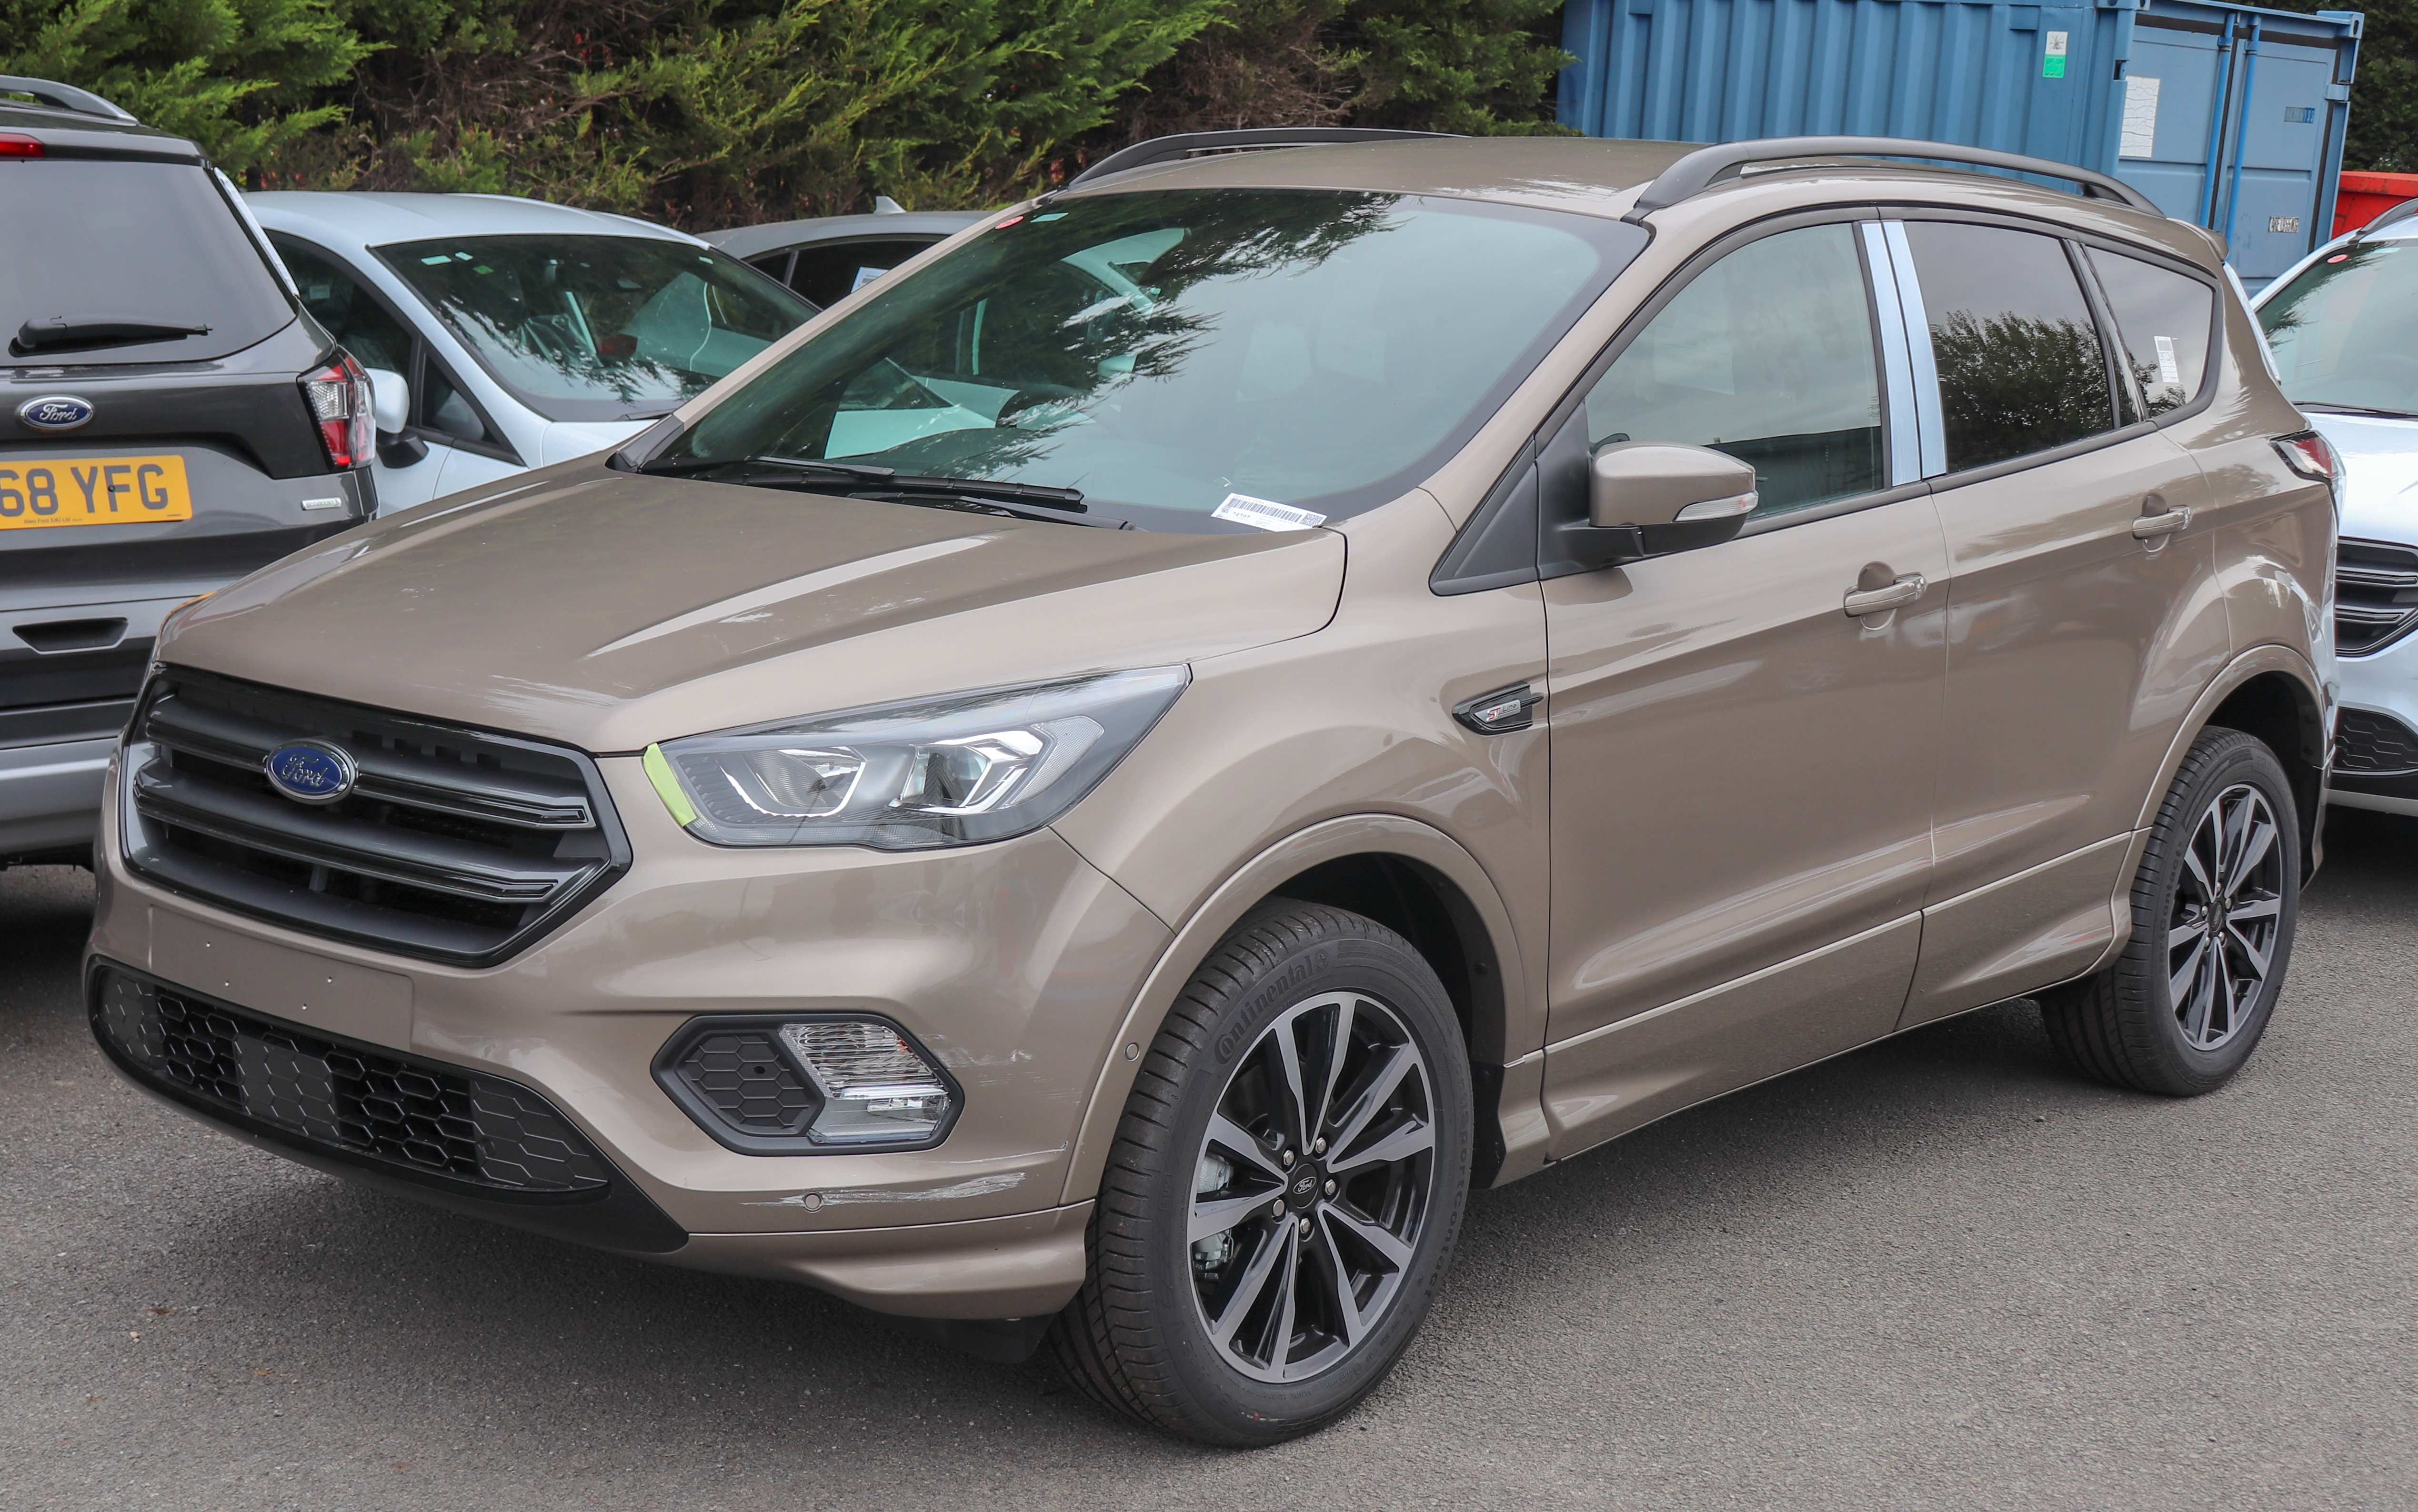 73 The Best Ford Kuga 2019 Review And Release Date Images